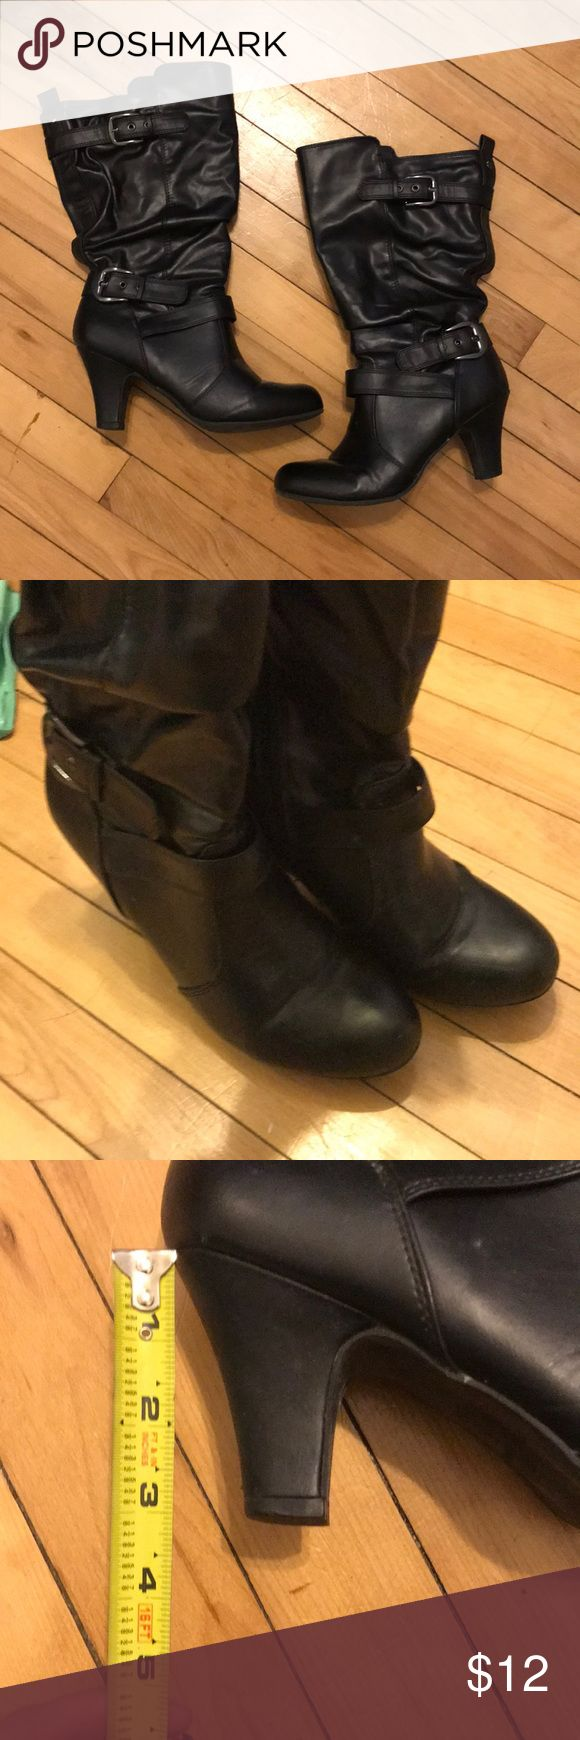 Black boots Great condition! Please make an offer! Maurices Shoes Heeled Boots